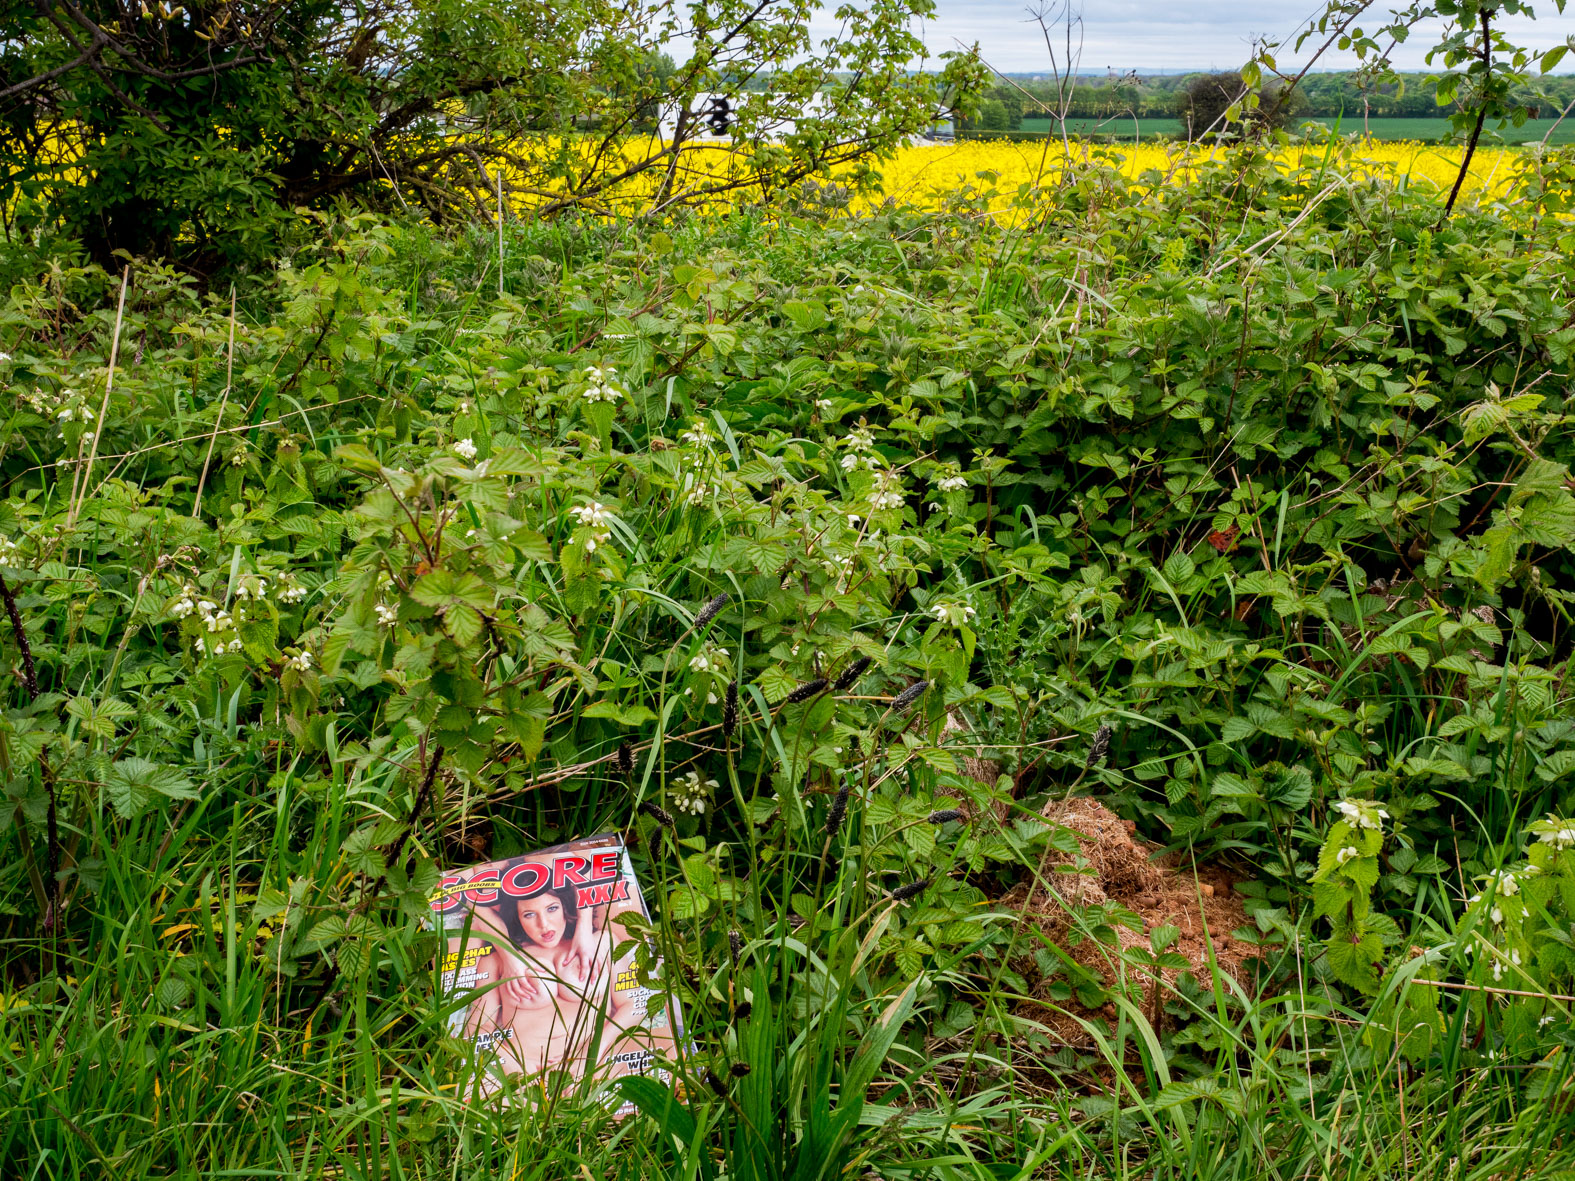 Discarded adult magazines found in a lay-by. West Yorkshire.